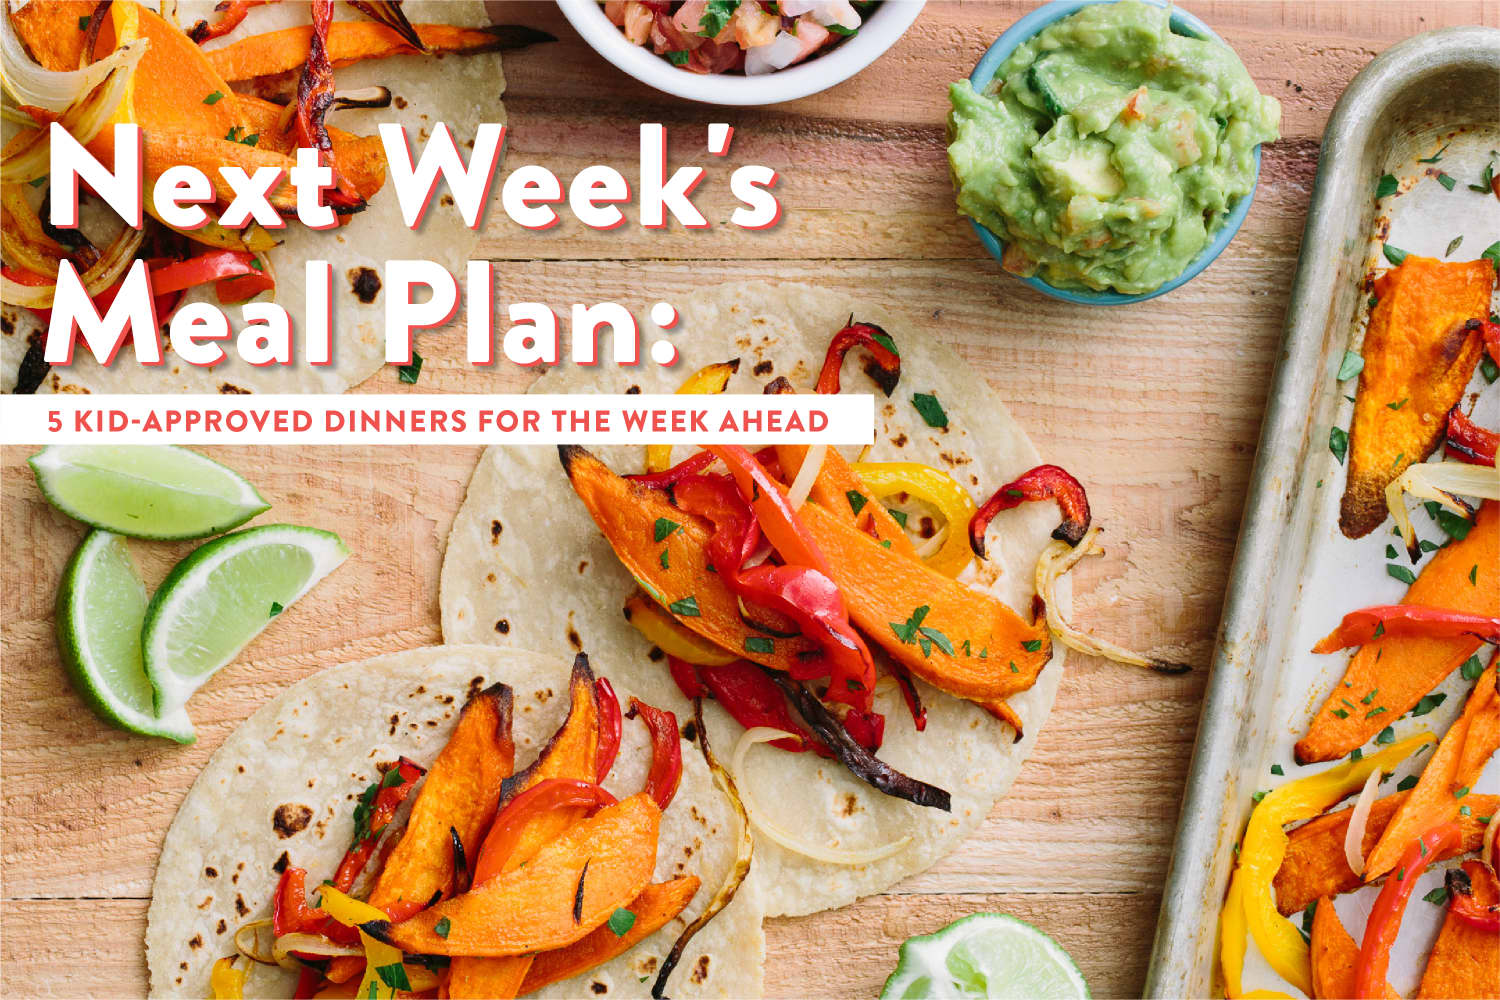 Next Week's Meal Plan: 5 Kid-Approved Dinners for the Week Ahead